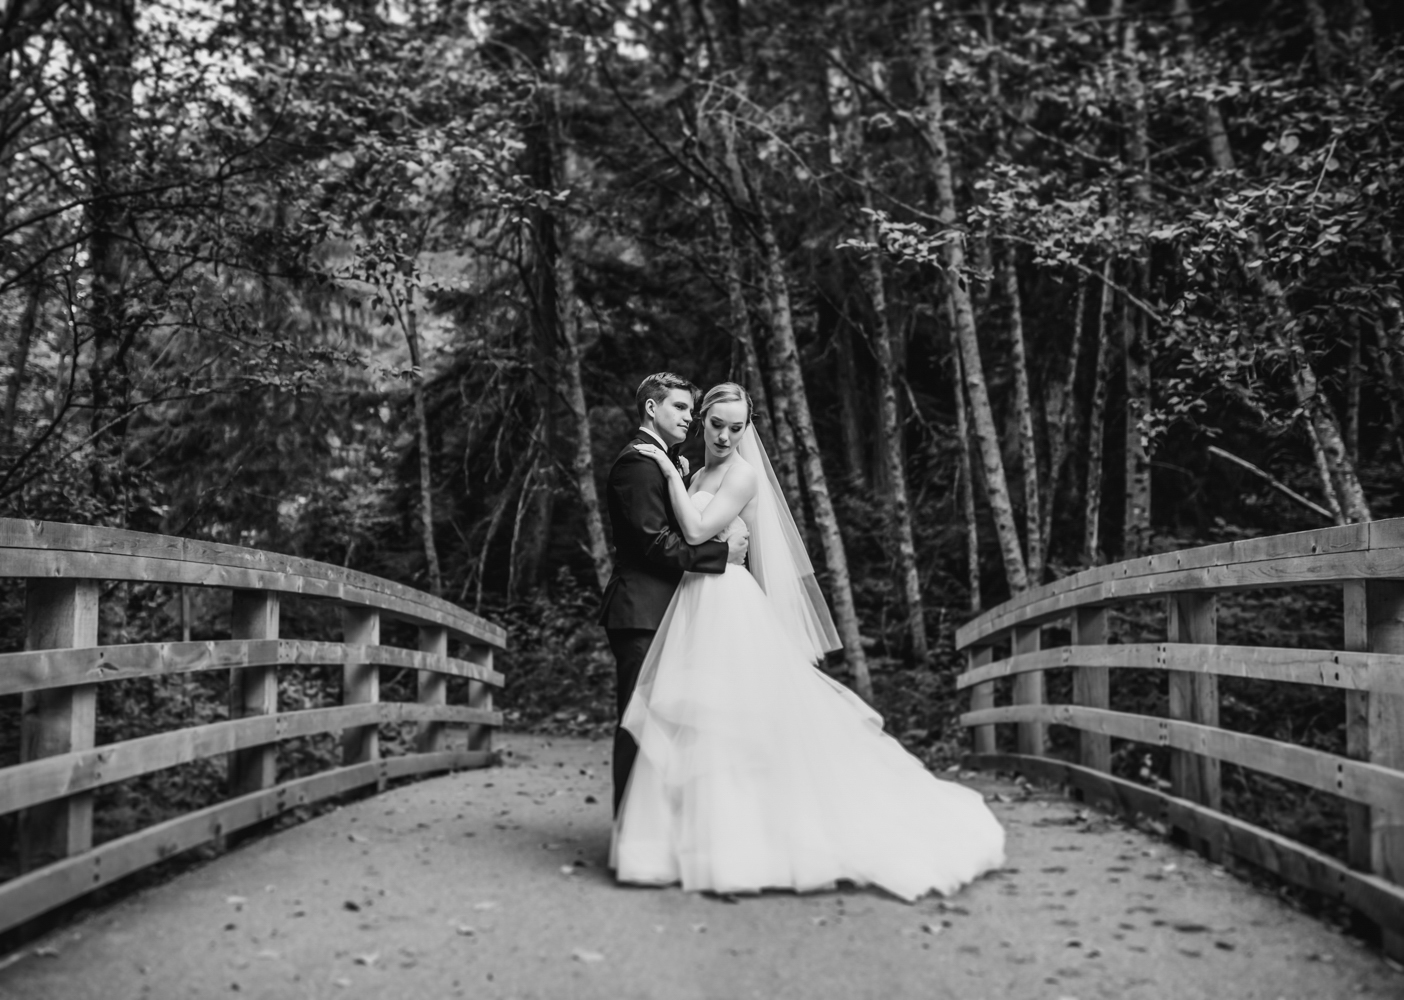 Nitalake wedding96.jpg